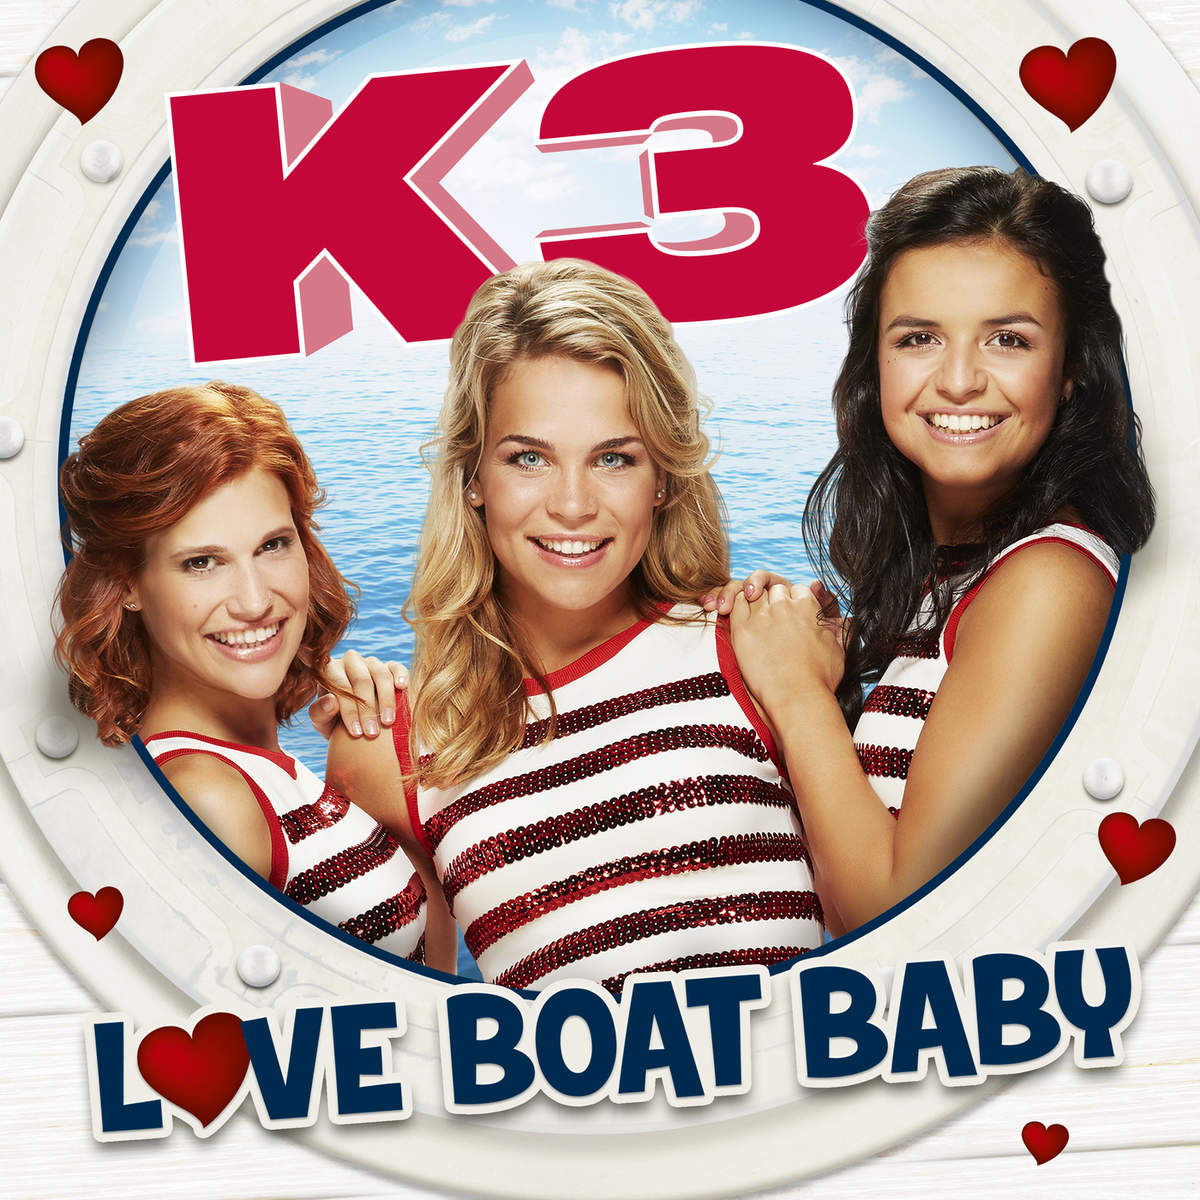 boat baby k3 wiki fandom powered by wikia